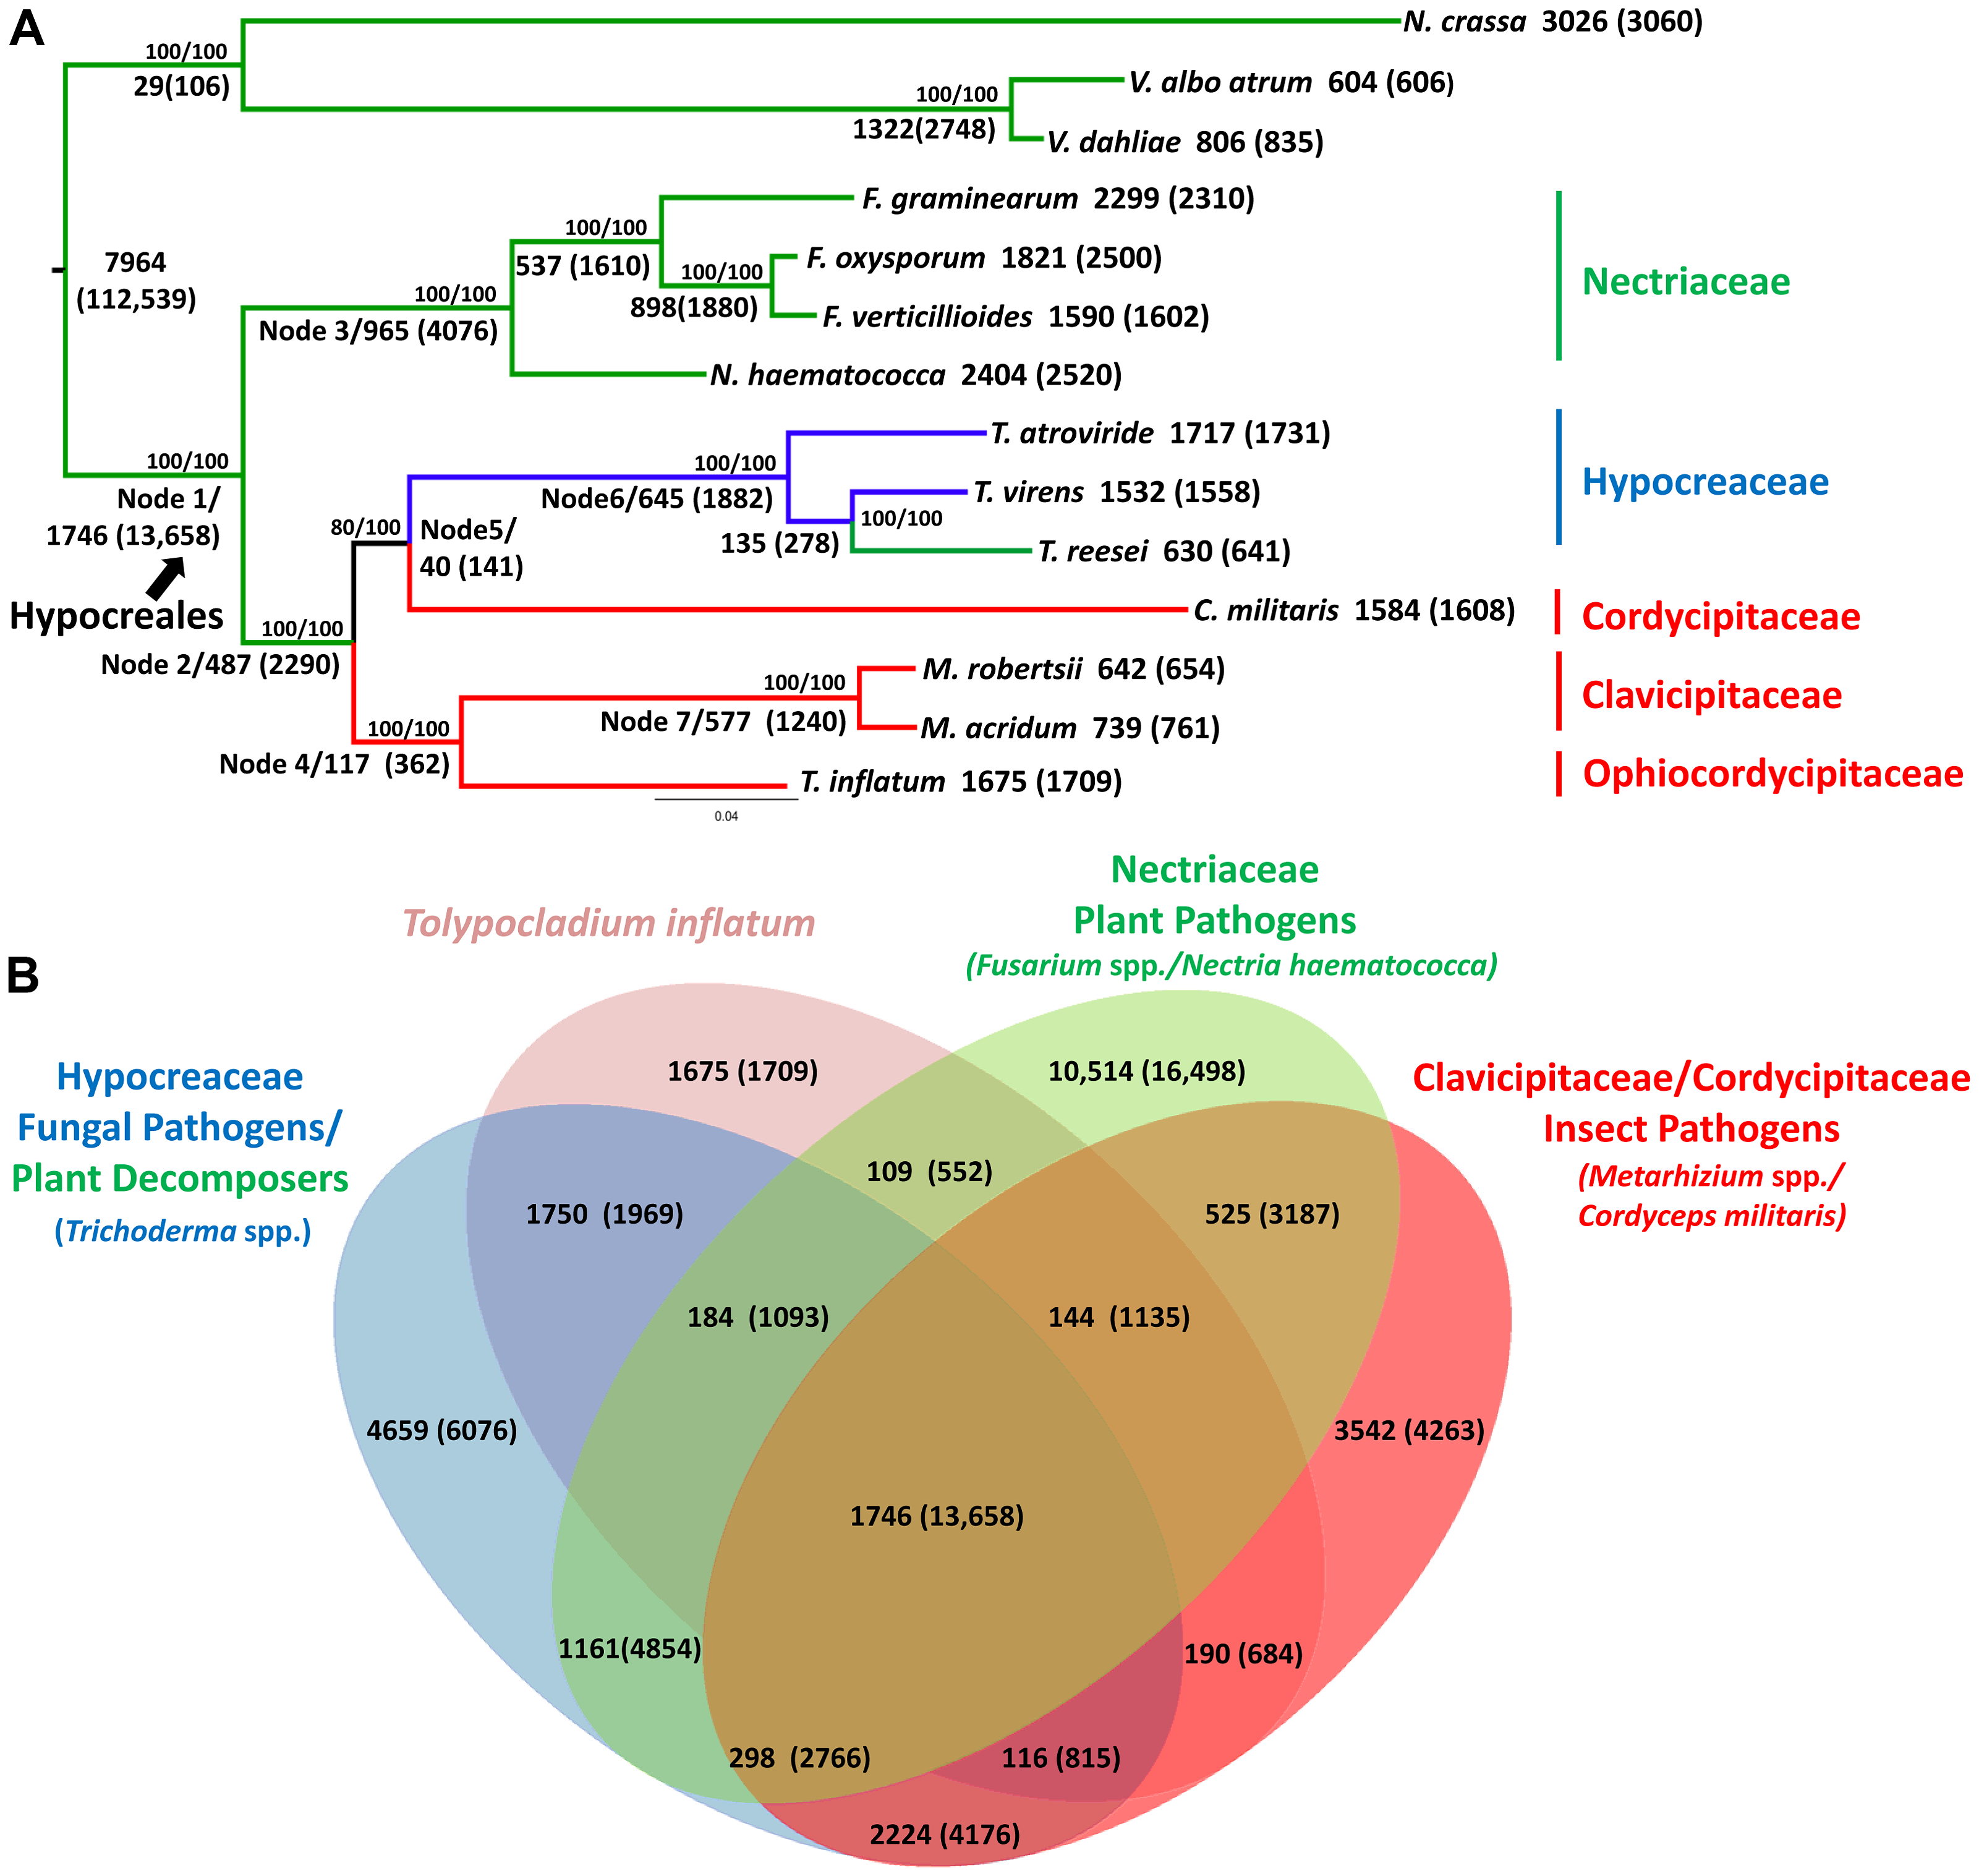 Phylogenetic relationships and orthologous gene clusters.